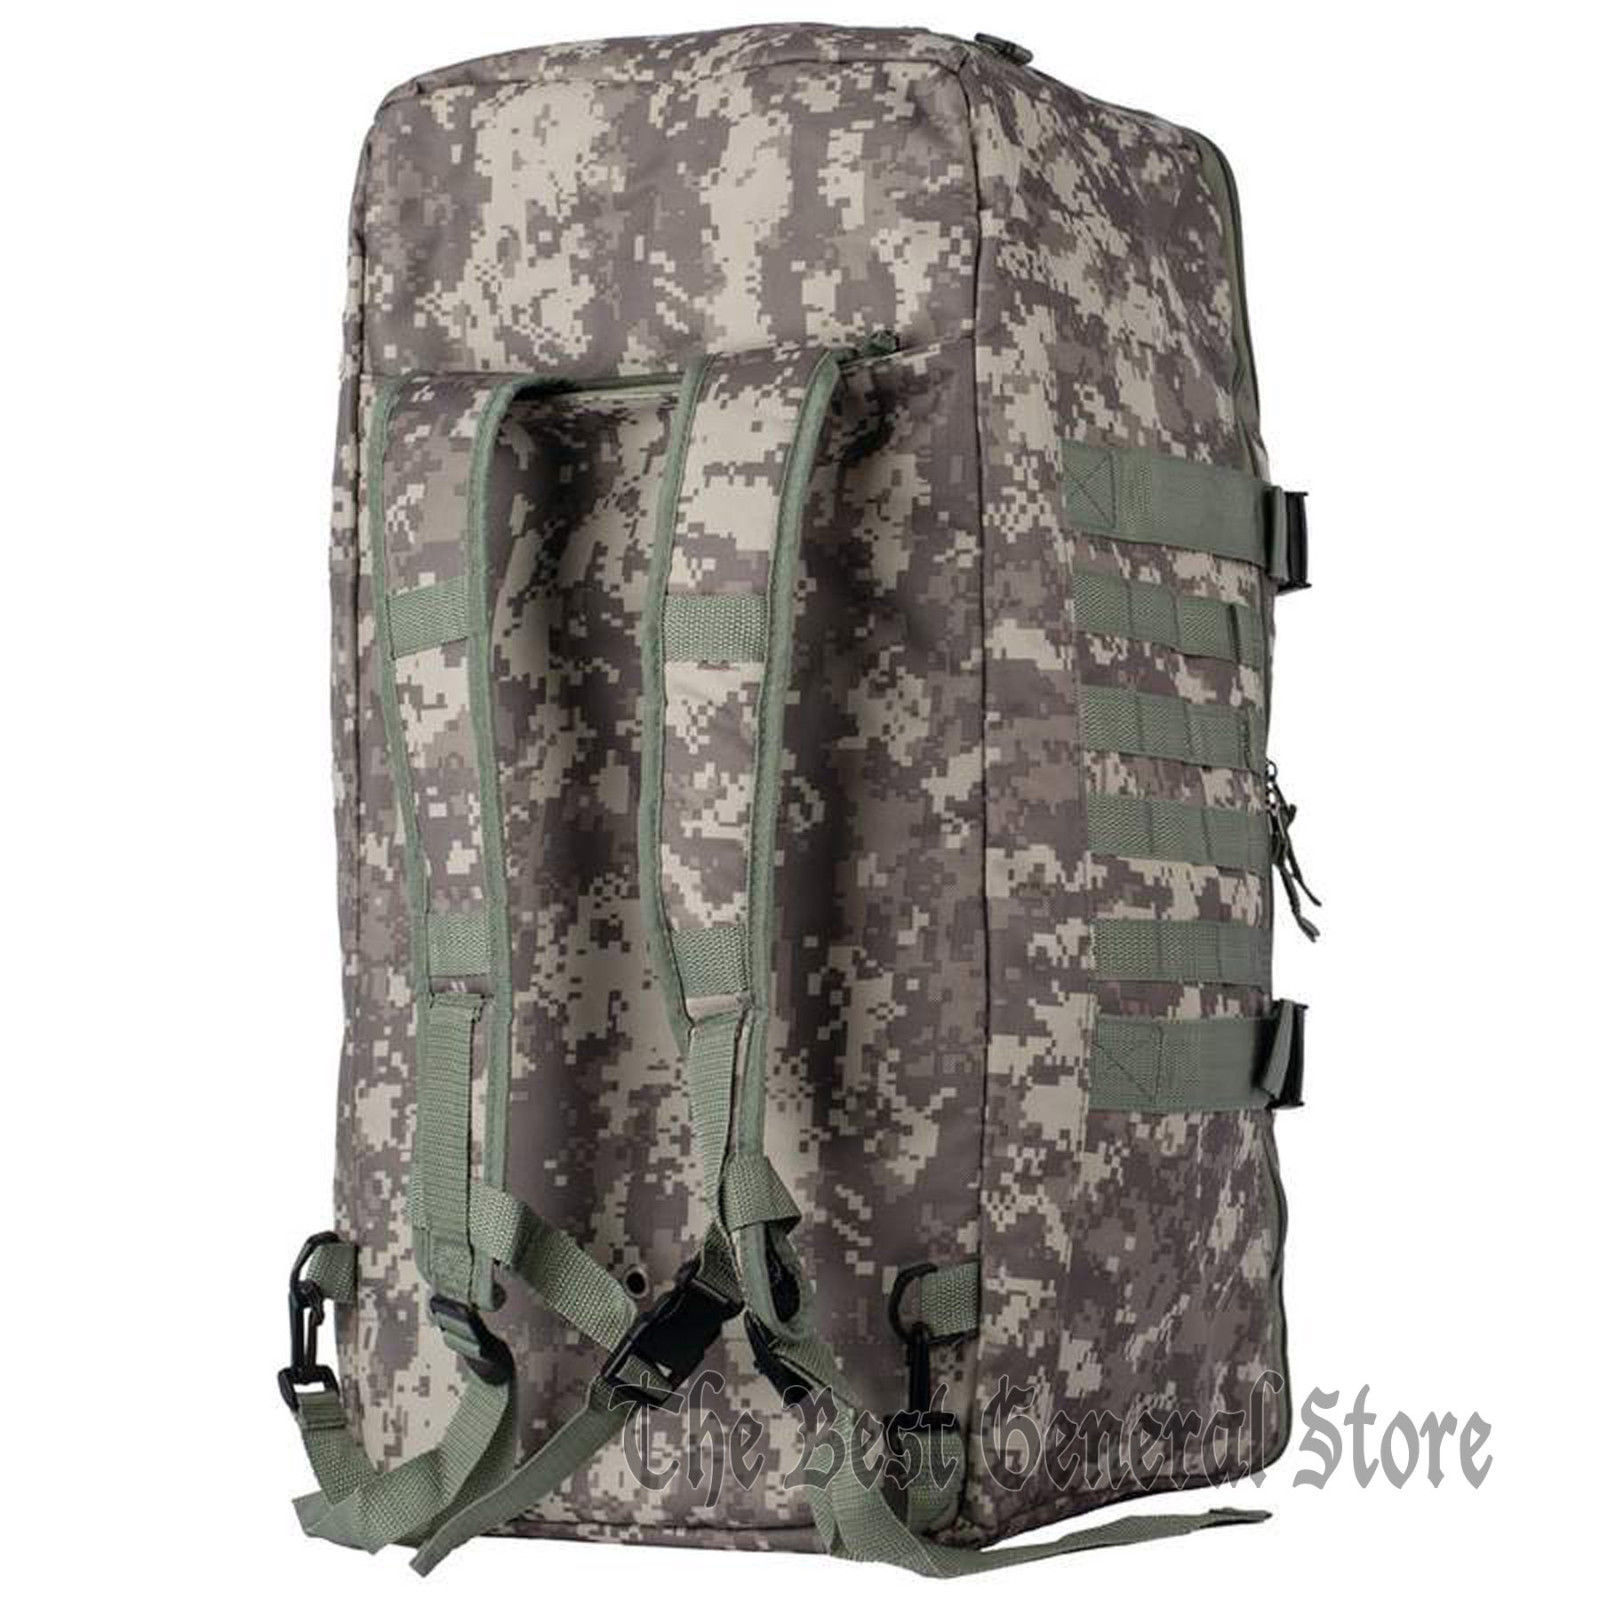 "Digital Camo 24"" Tote Backpack Duffle Bag Day Pack Hunting Hiking Camping Gear"